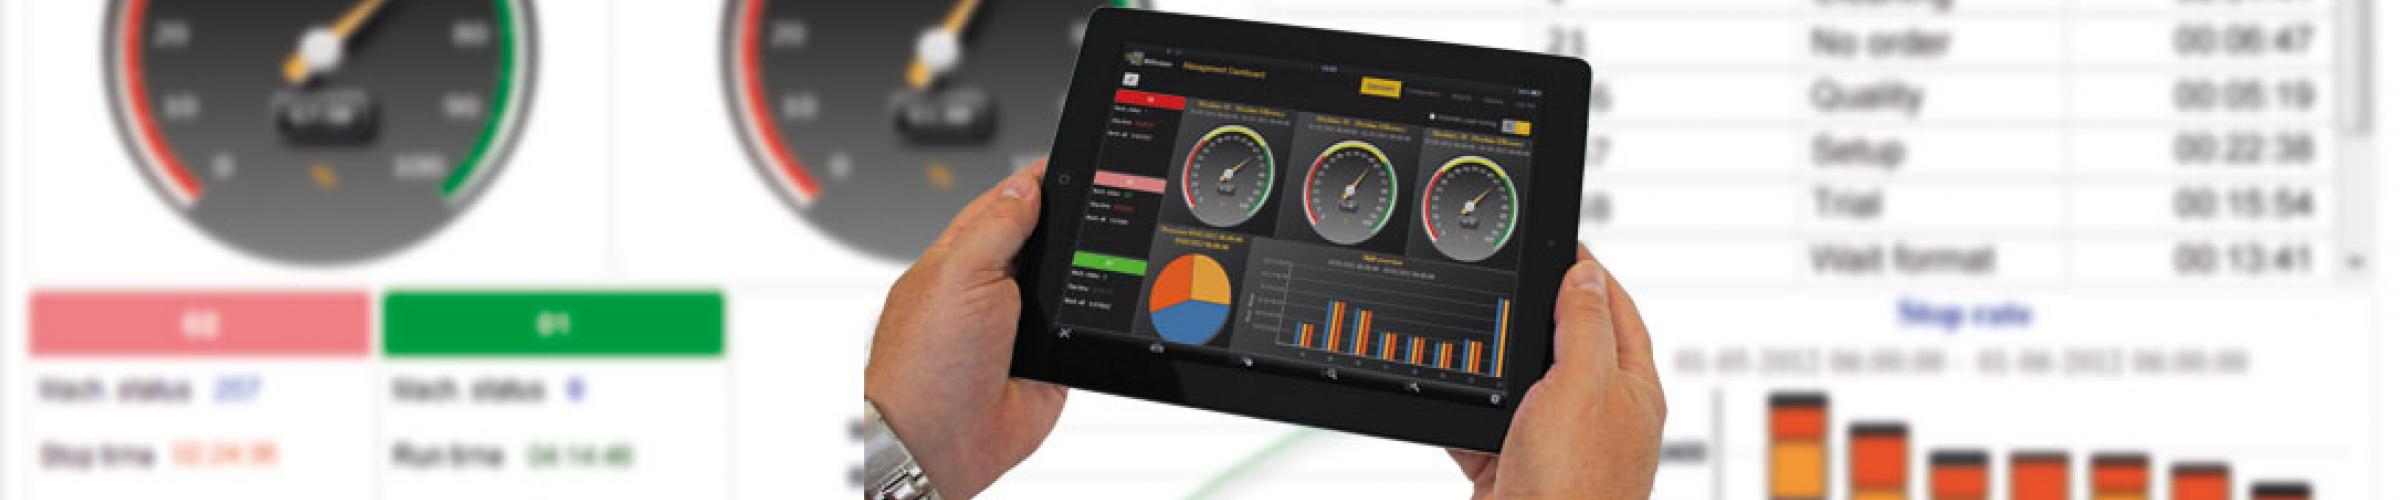 Production Monitoring on Mobile Devices